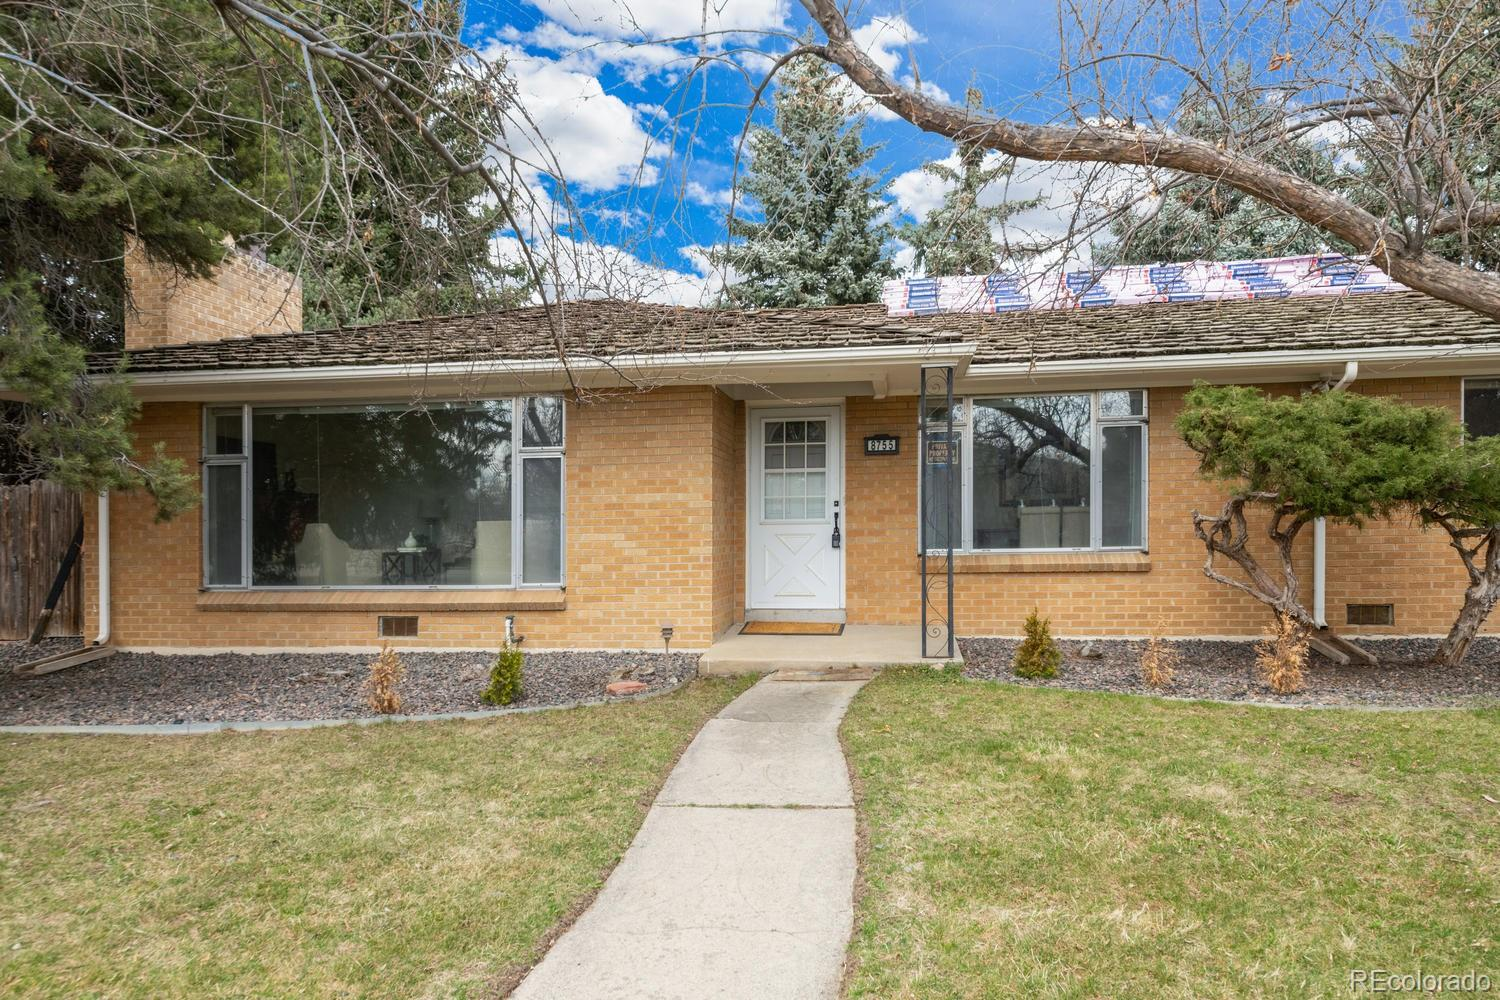 MLS# 9108794 - 3 - 8755 W 73rd Place, Arvada, CO 80005